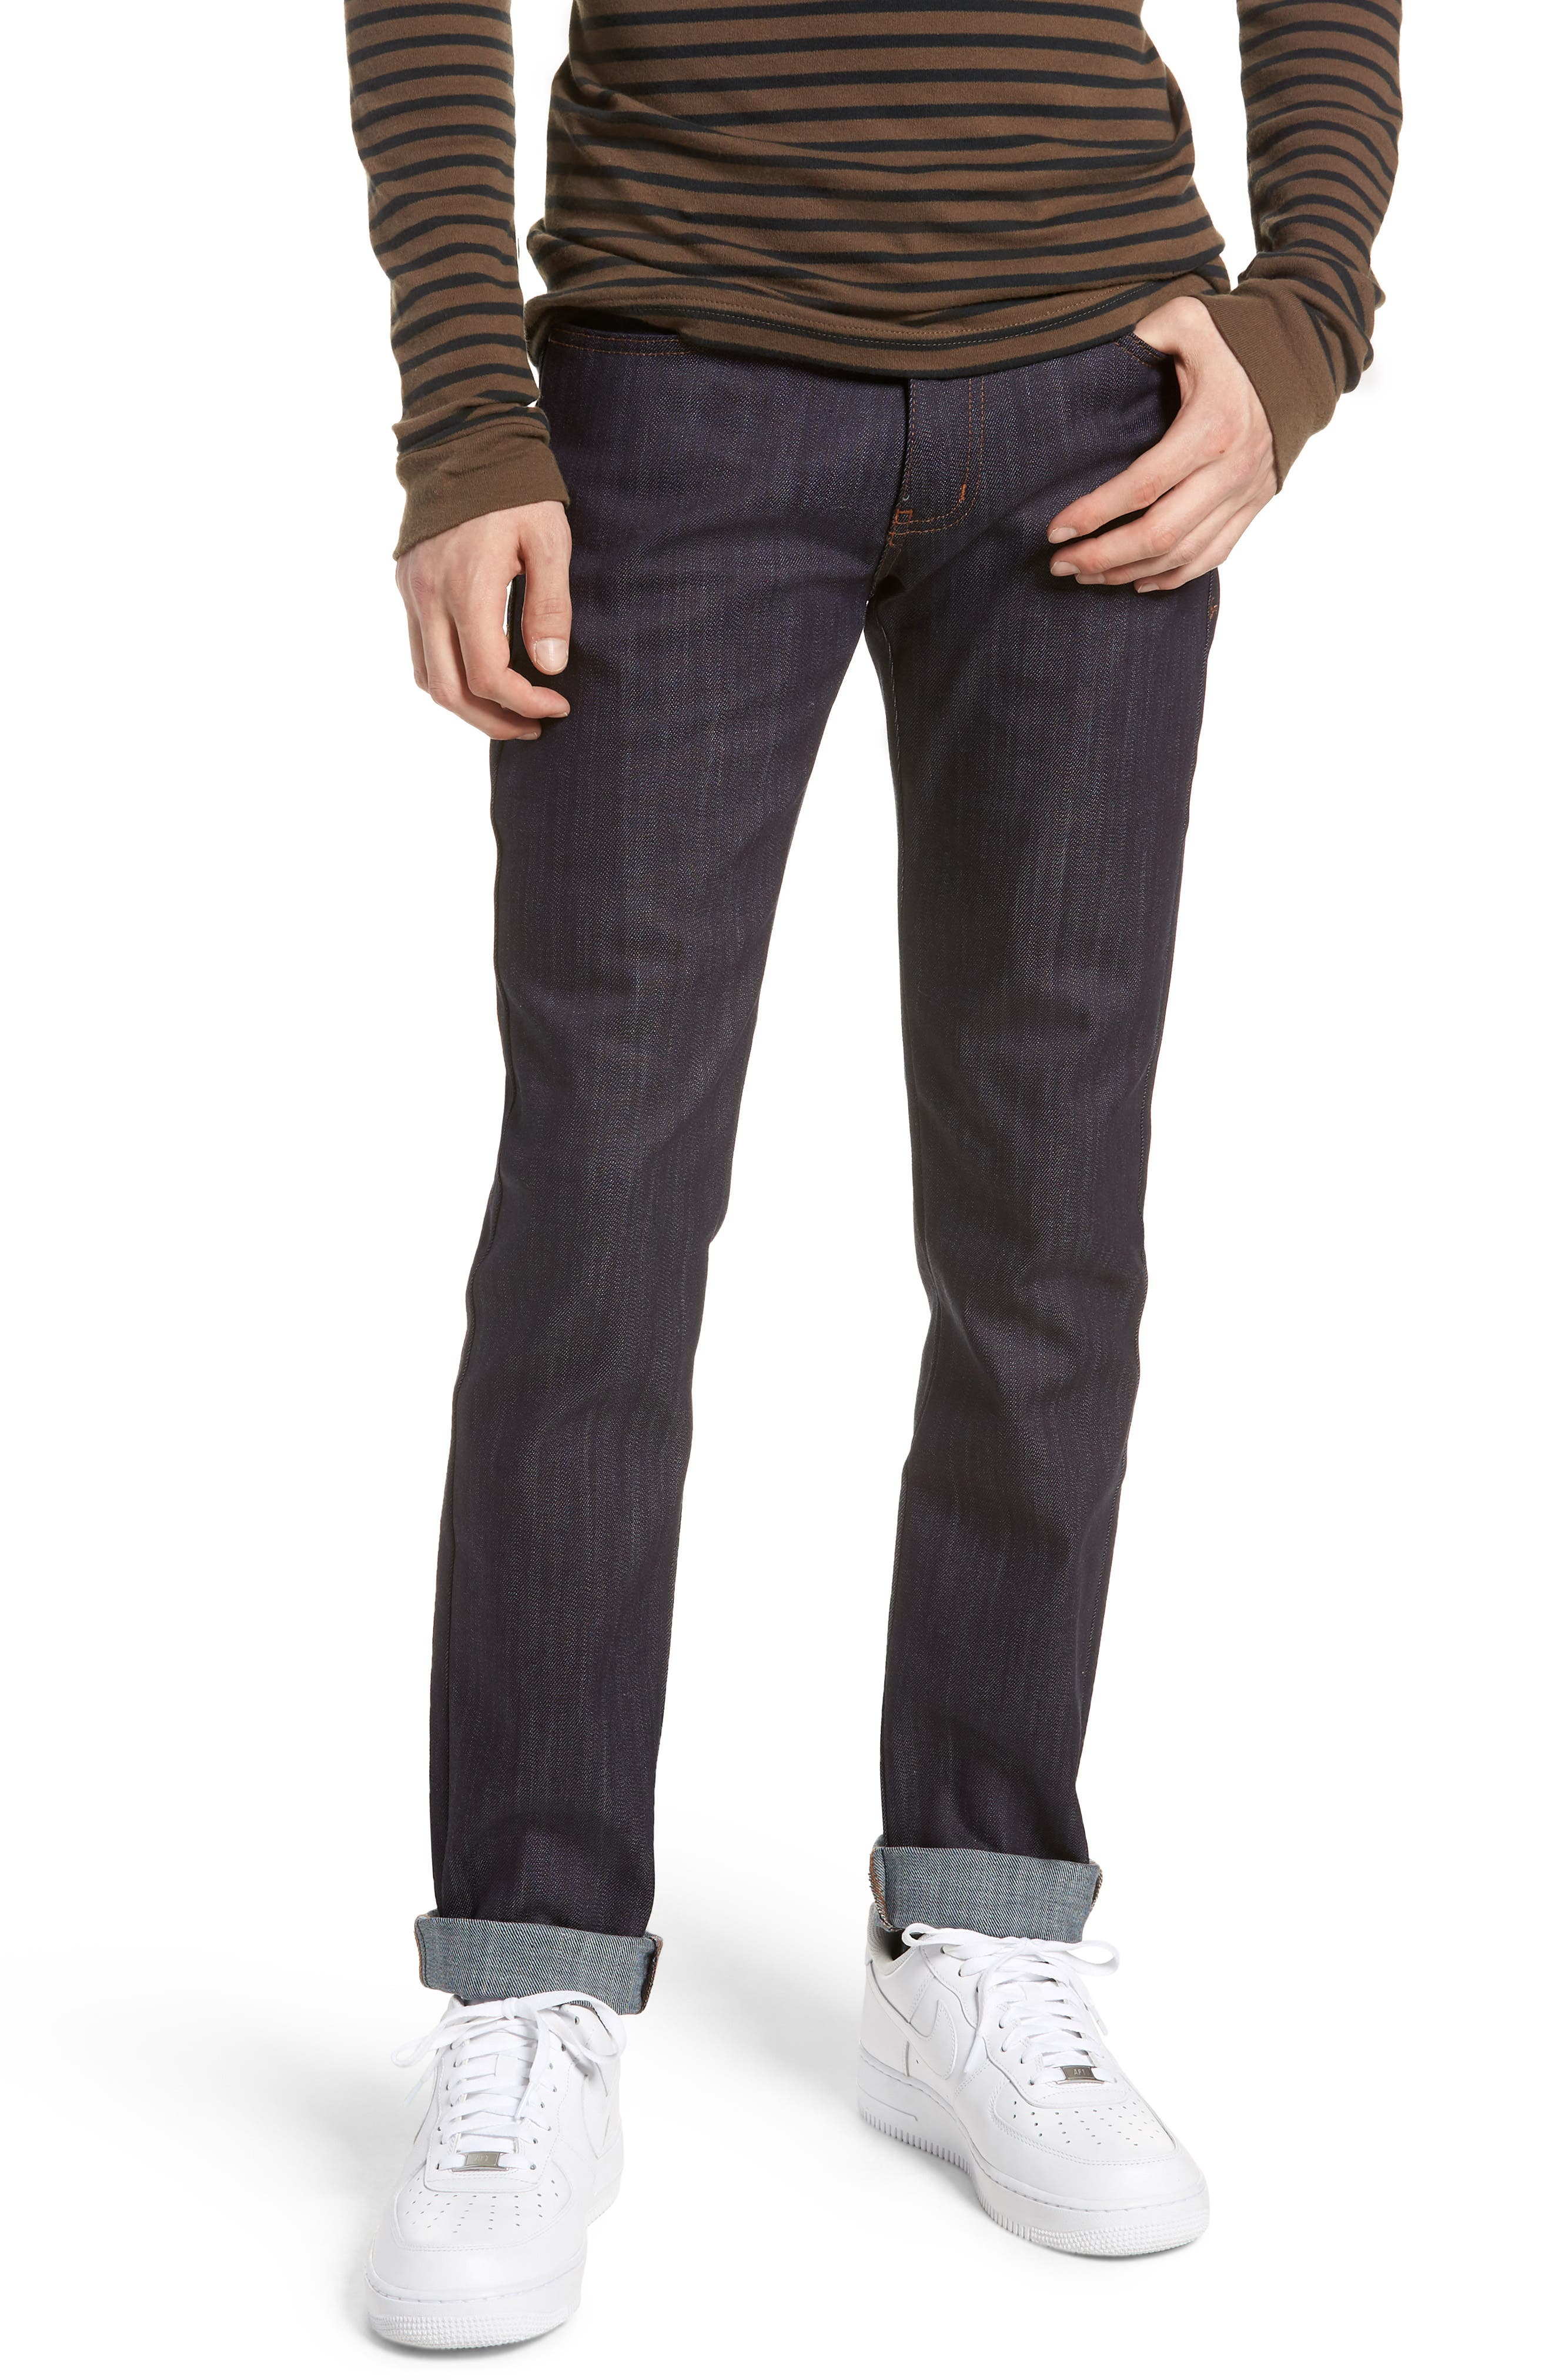 Naked & Famous Super Skinny Guy Skinny Fit Jeans,                         Main,                         color, INDIGO POWER STRETCH